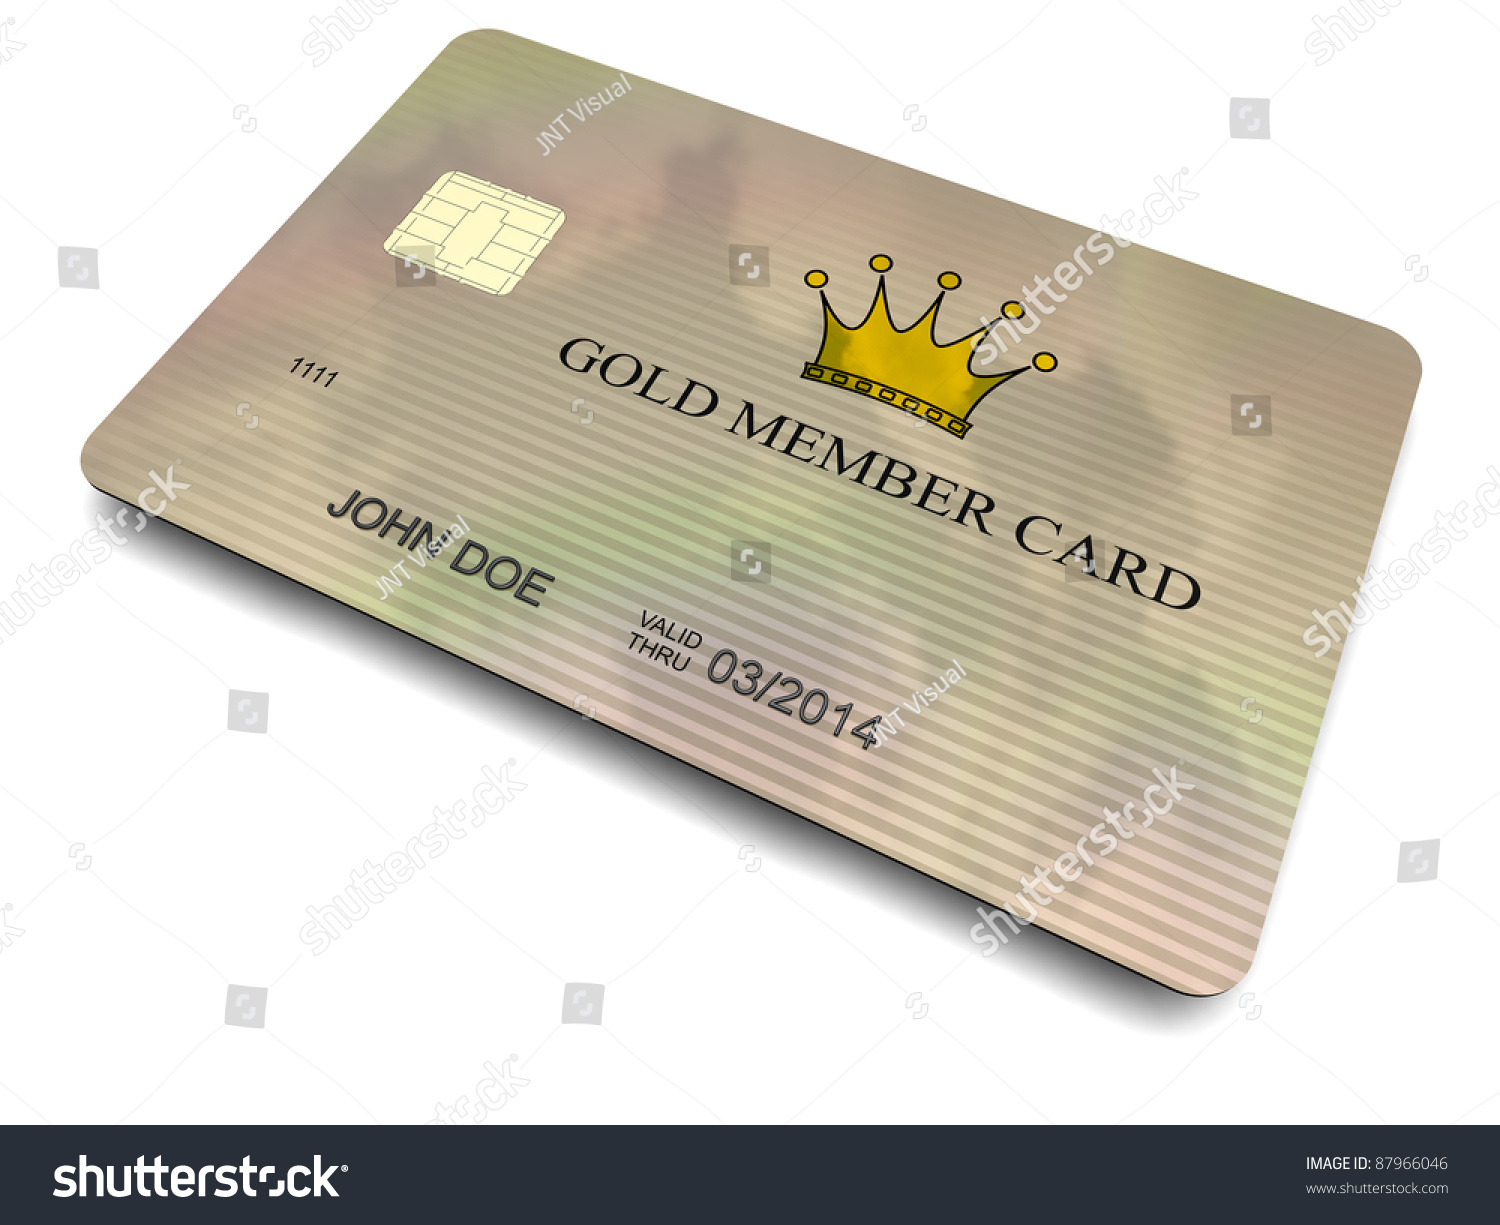 3dmodeled Plastic Member Card Chip Cropped Stock Illustration ...